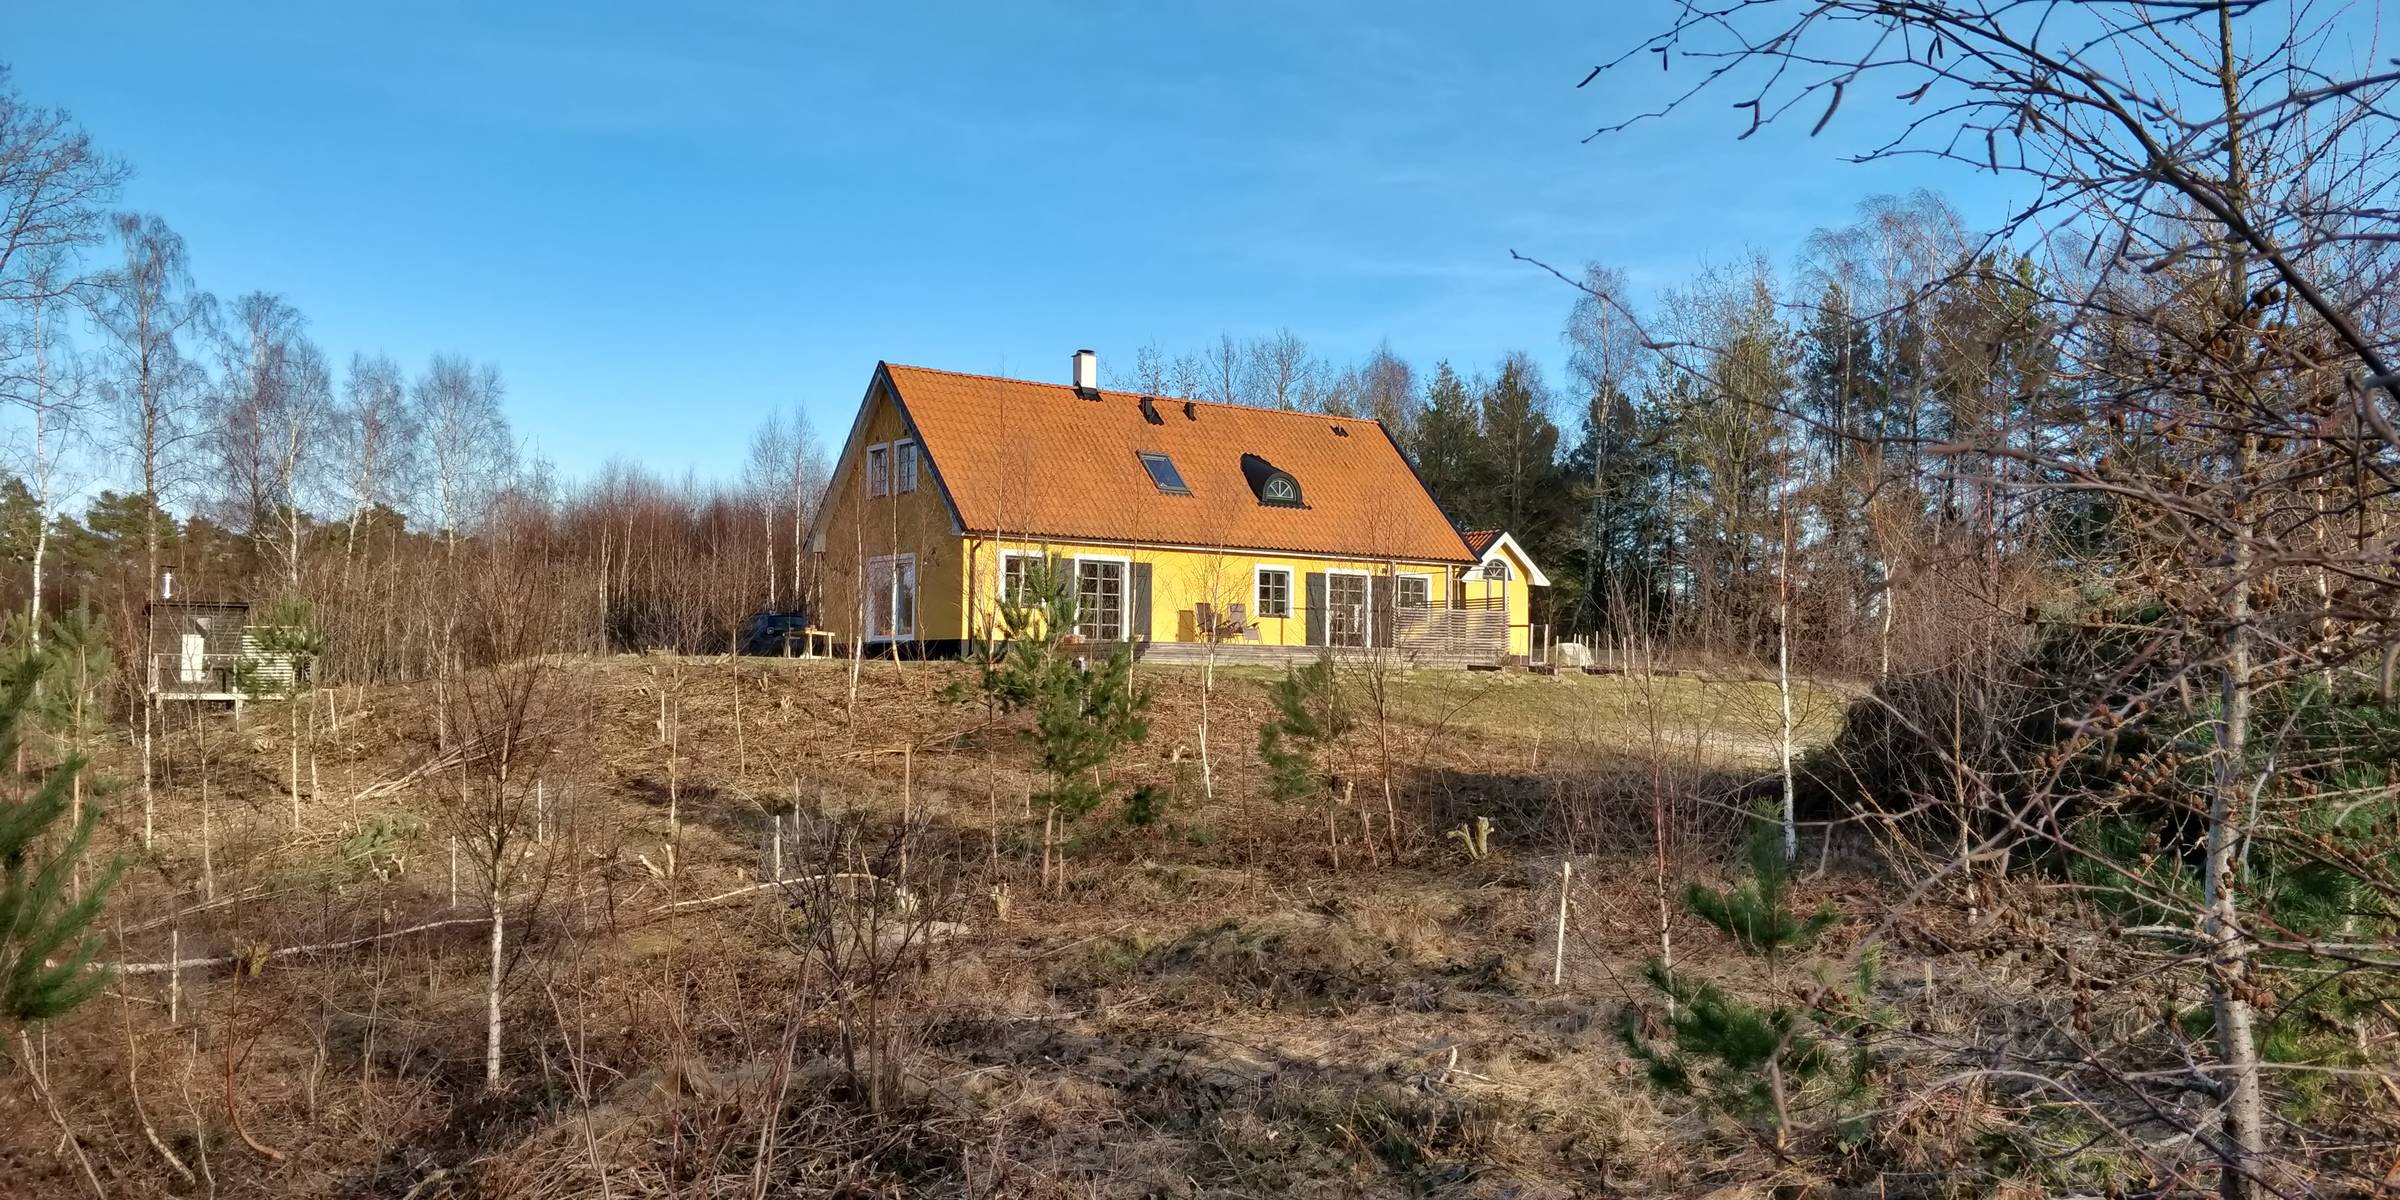 Our beloved house, seen from the midst of newly planted trees on the slope.